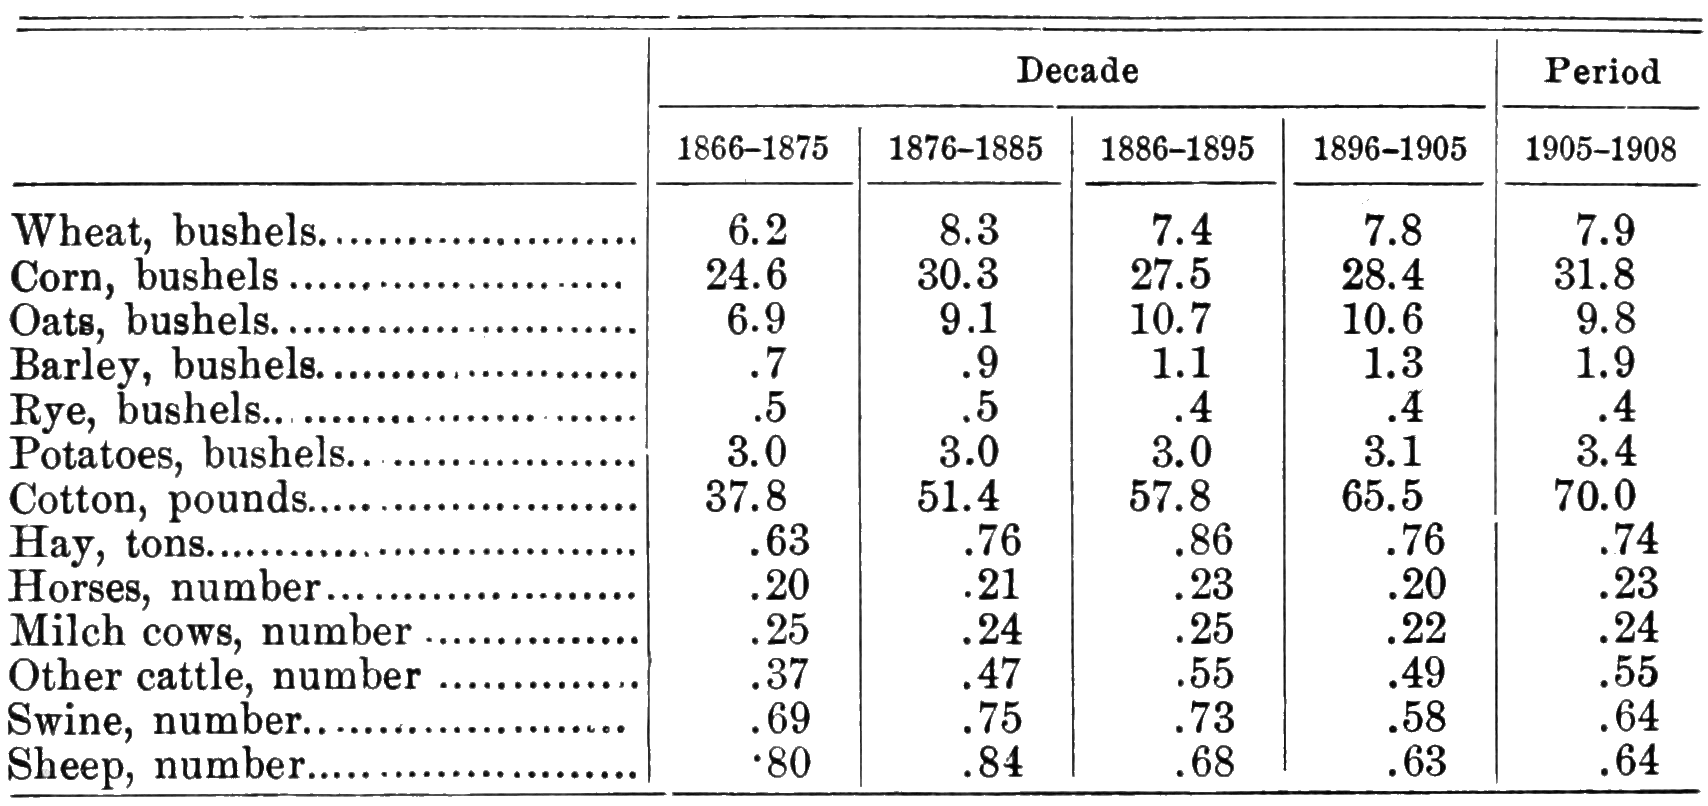 PSM V76 D468 Usa agricultural production between 1866 and 1908.png